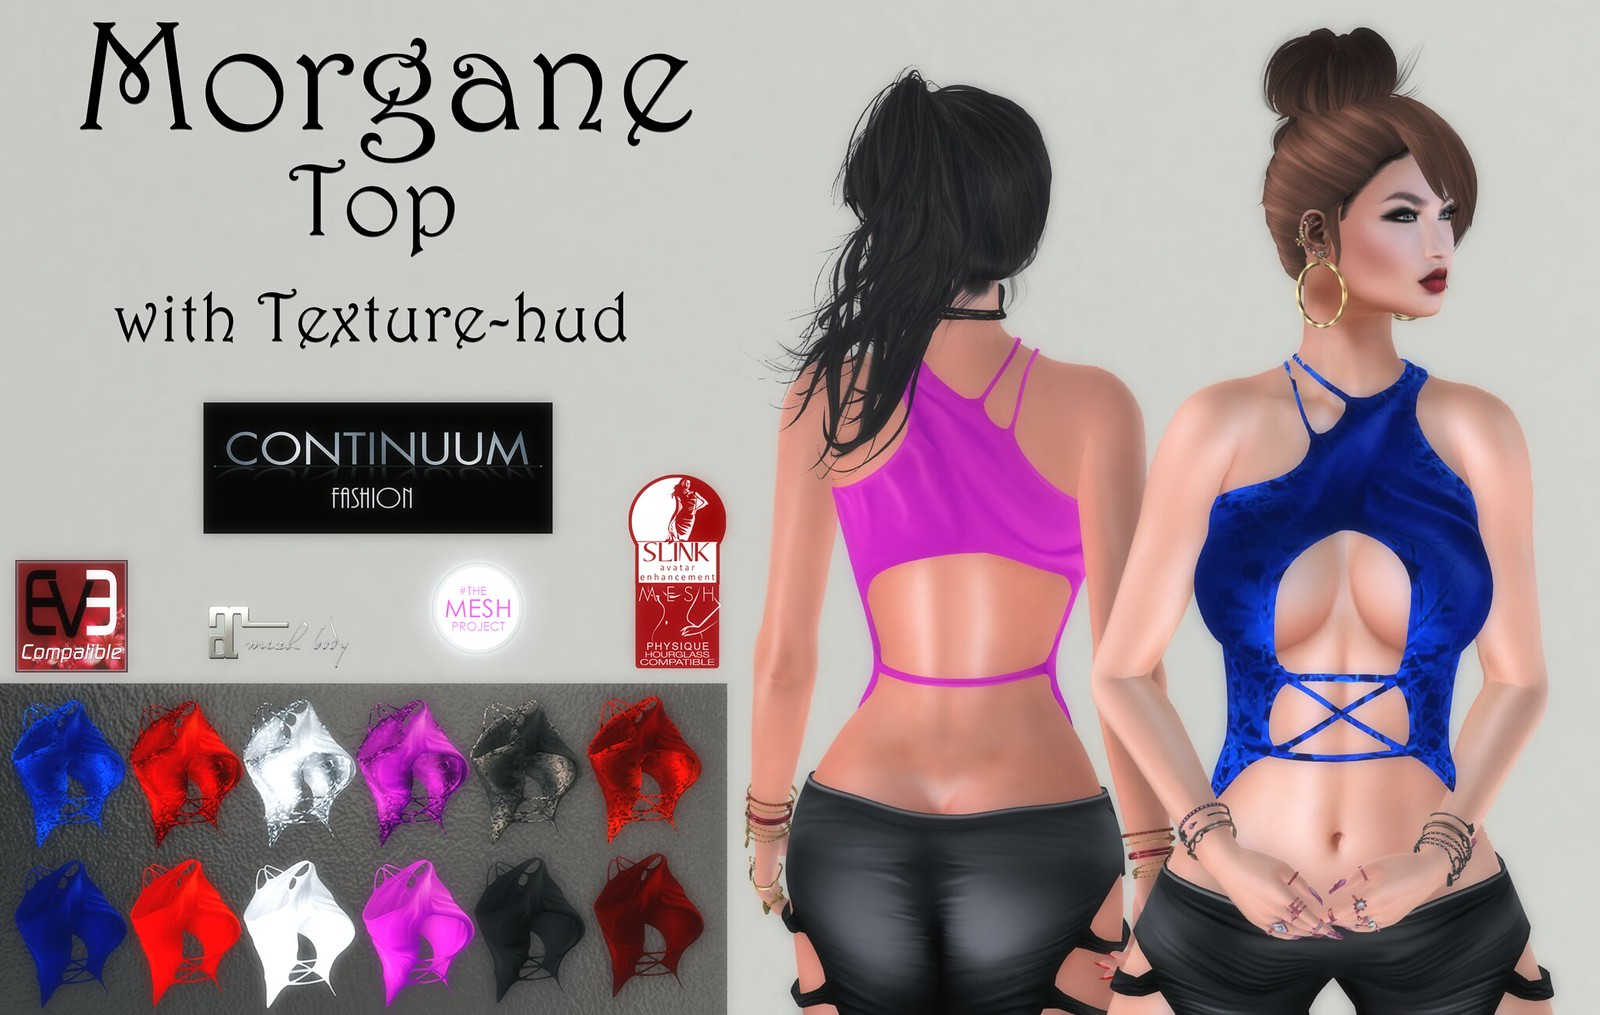 New! Continuum Fashion Morgane Top